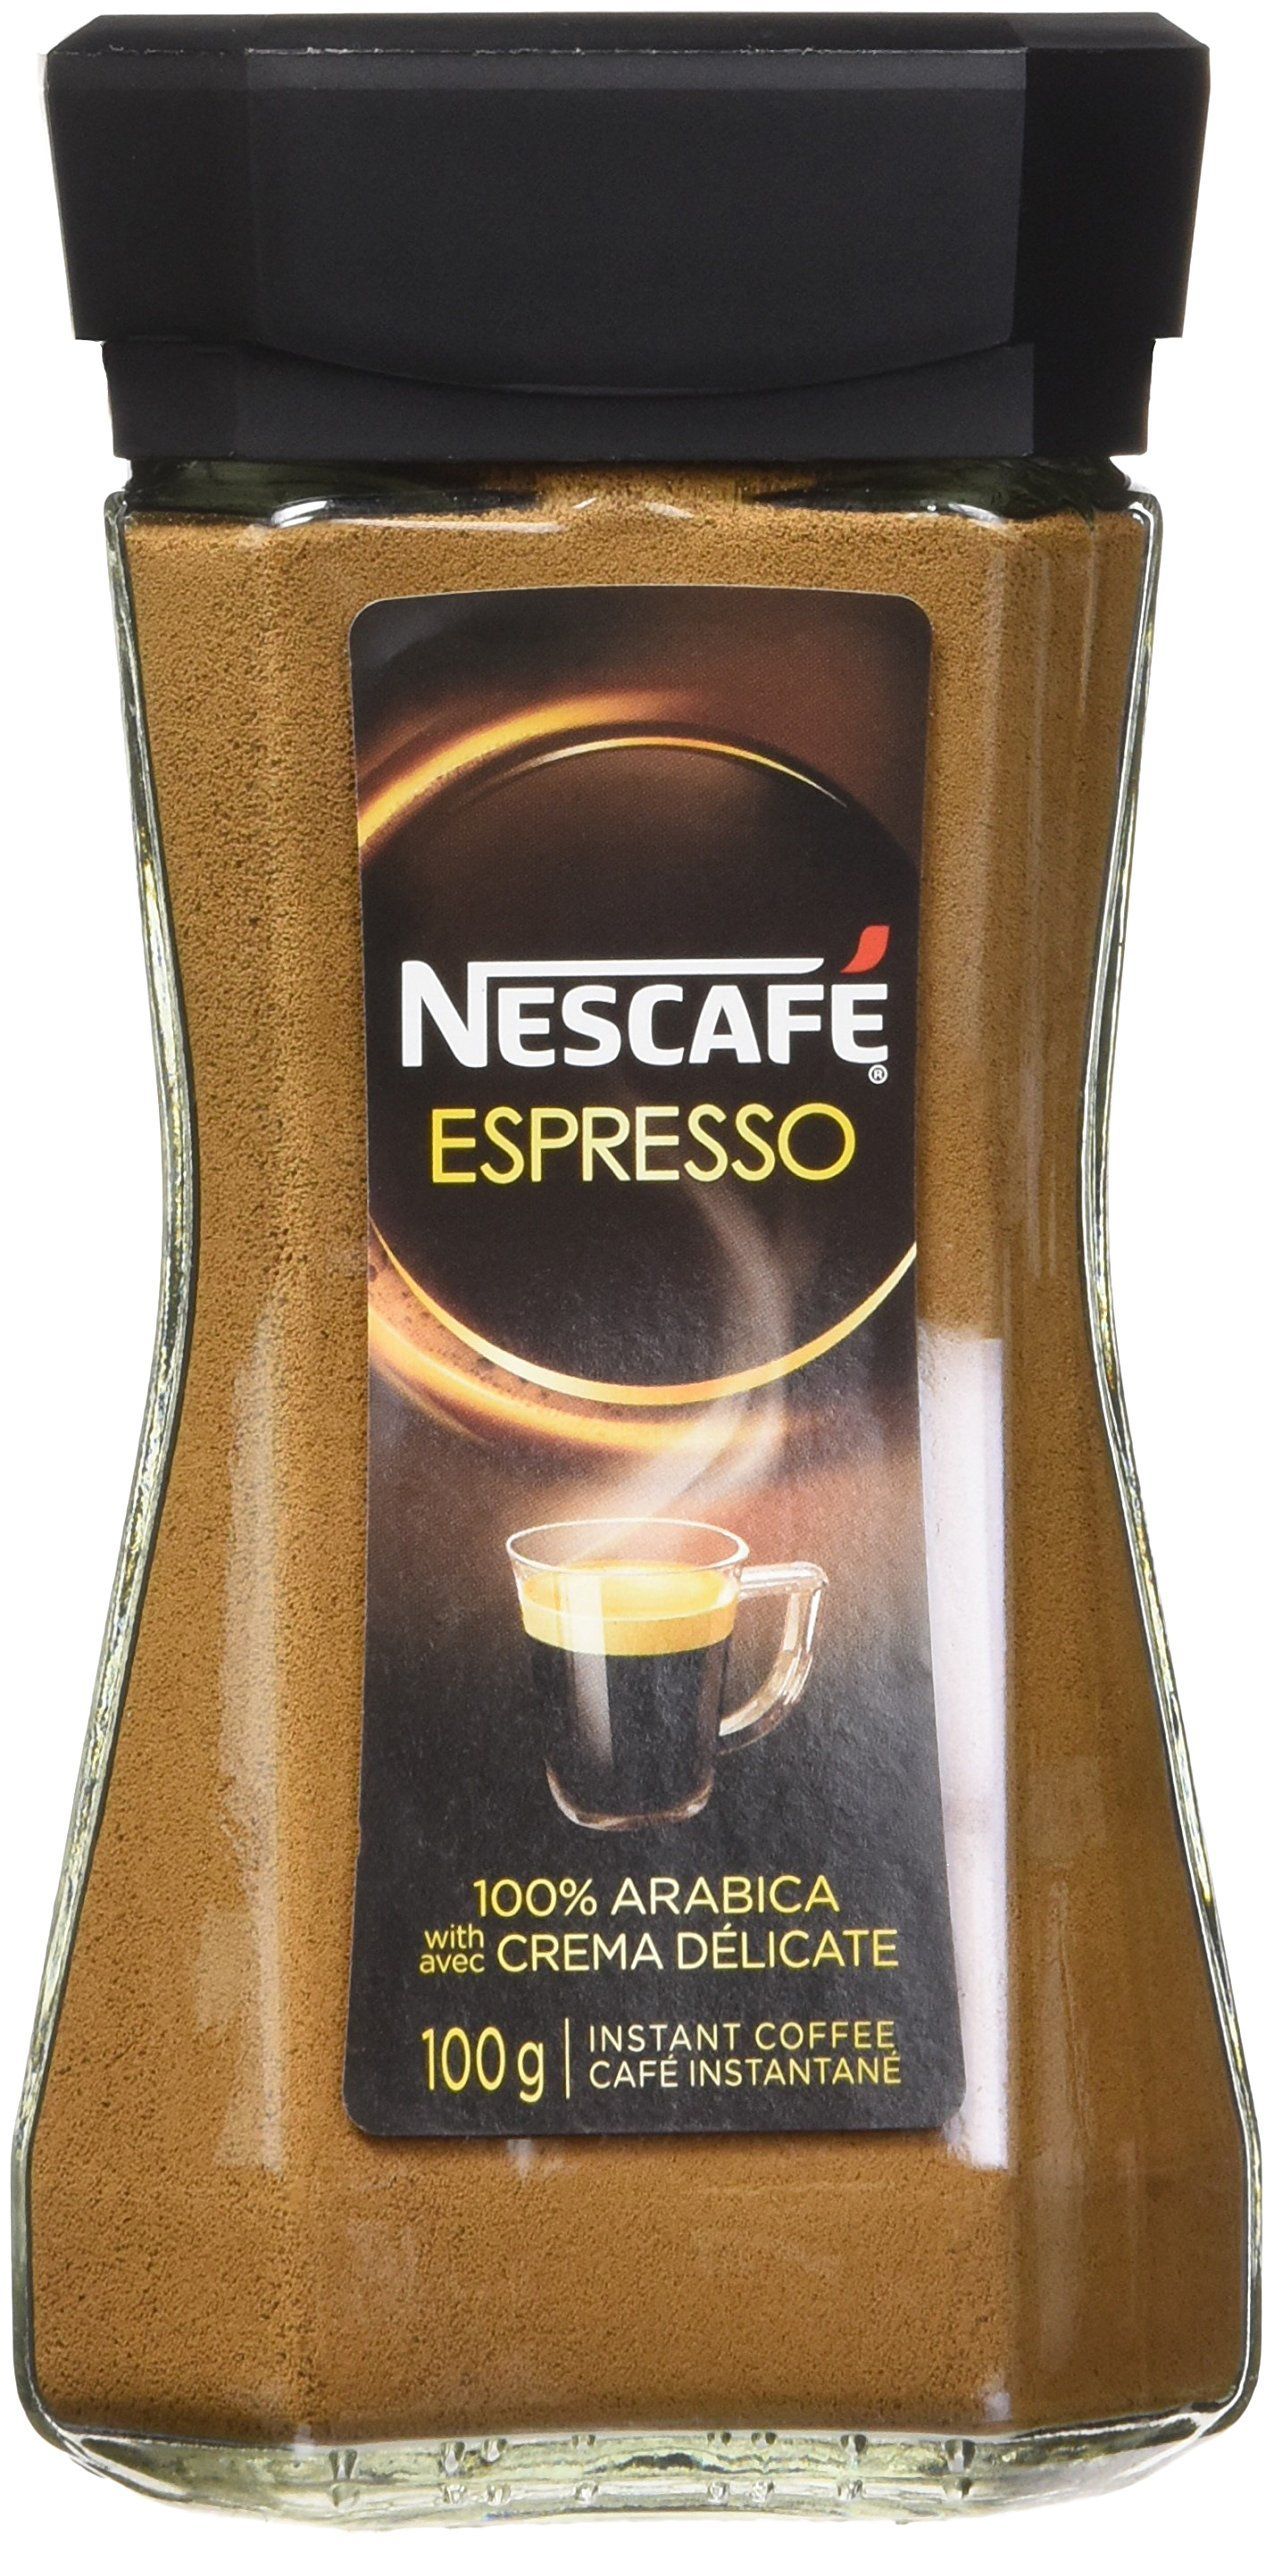 Nescafe Espresso Instant Coffee 3.5oz/100g >>> Find out